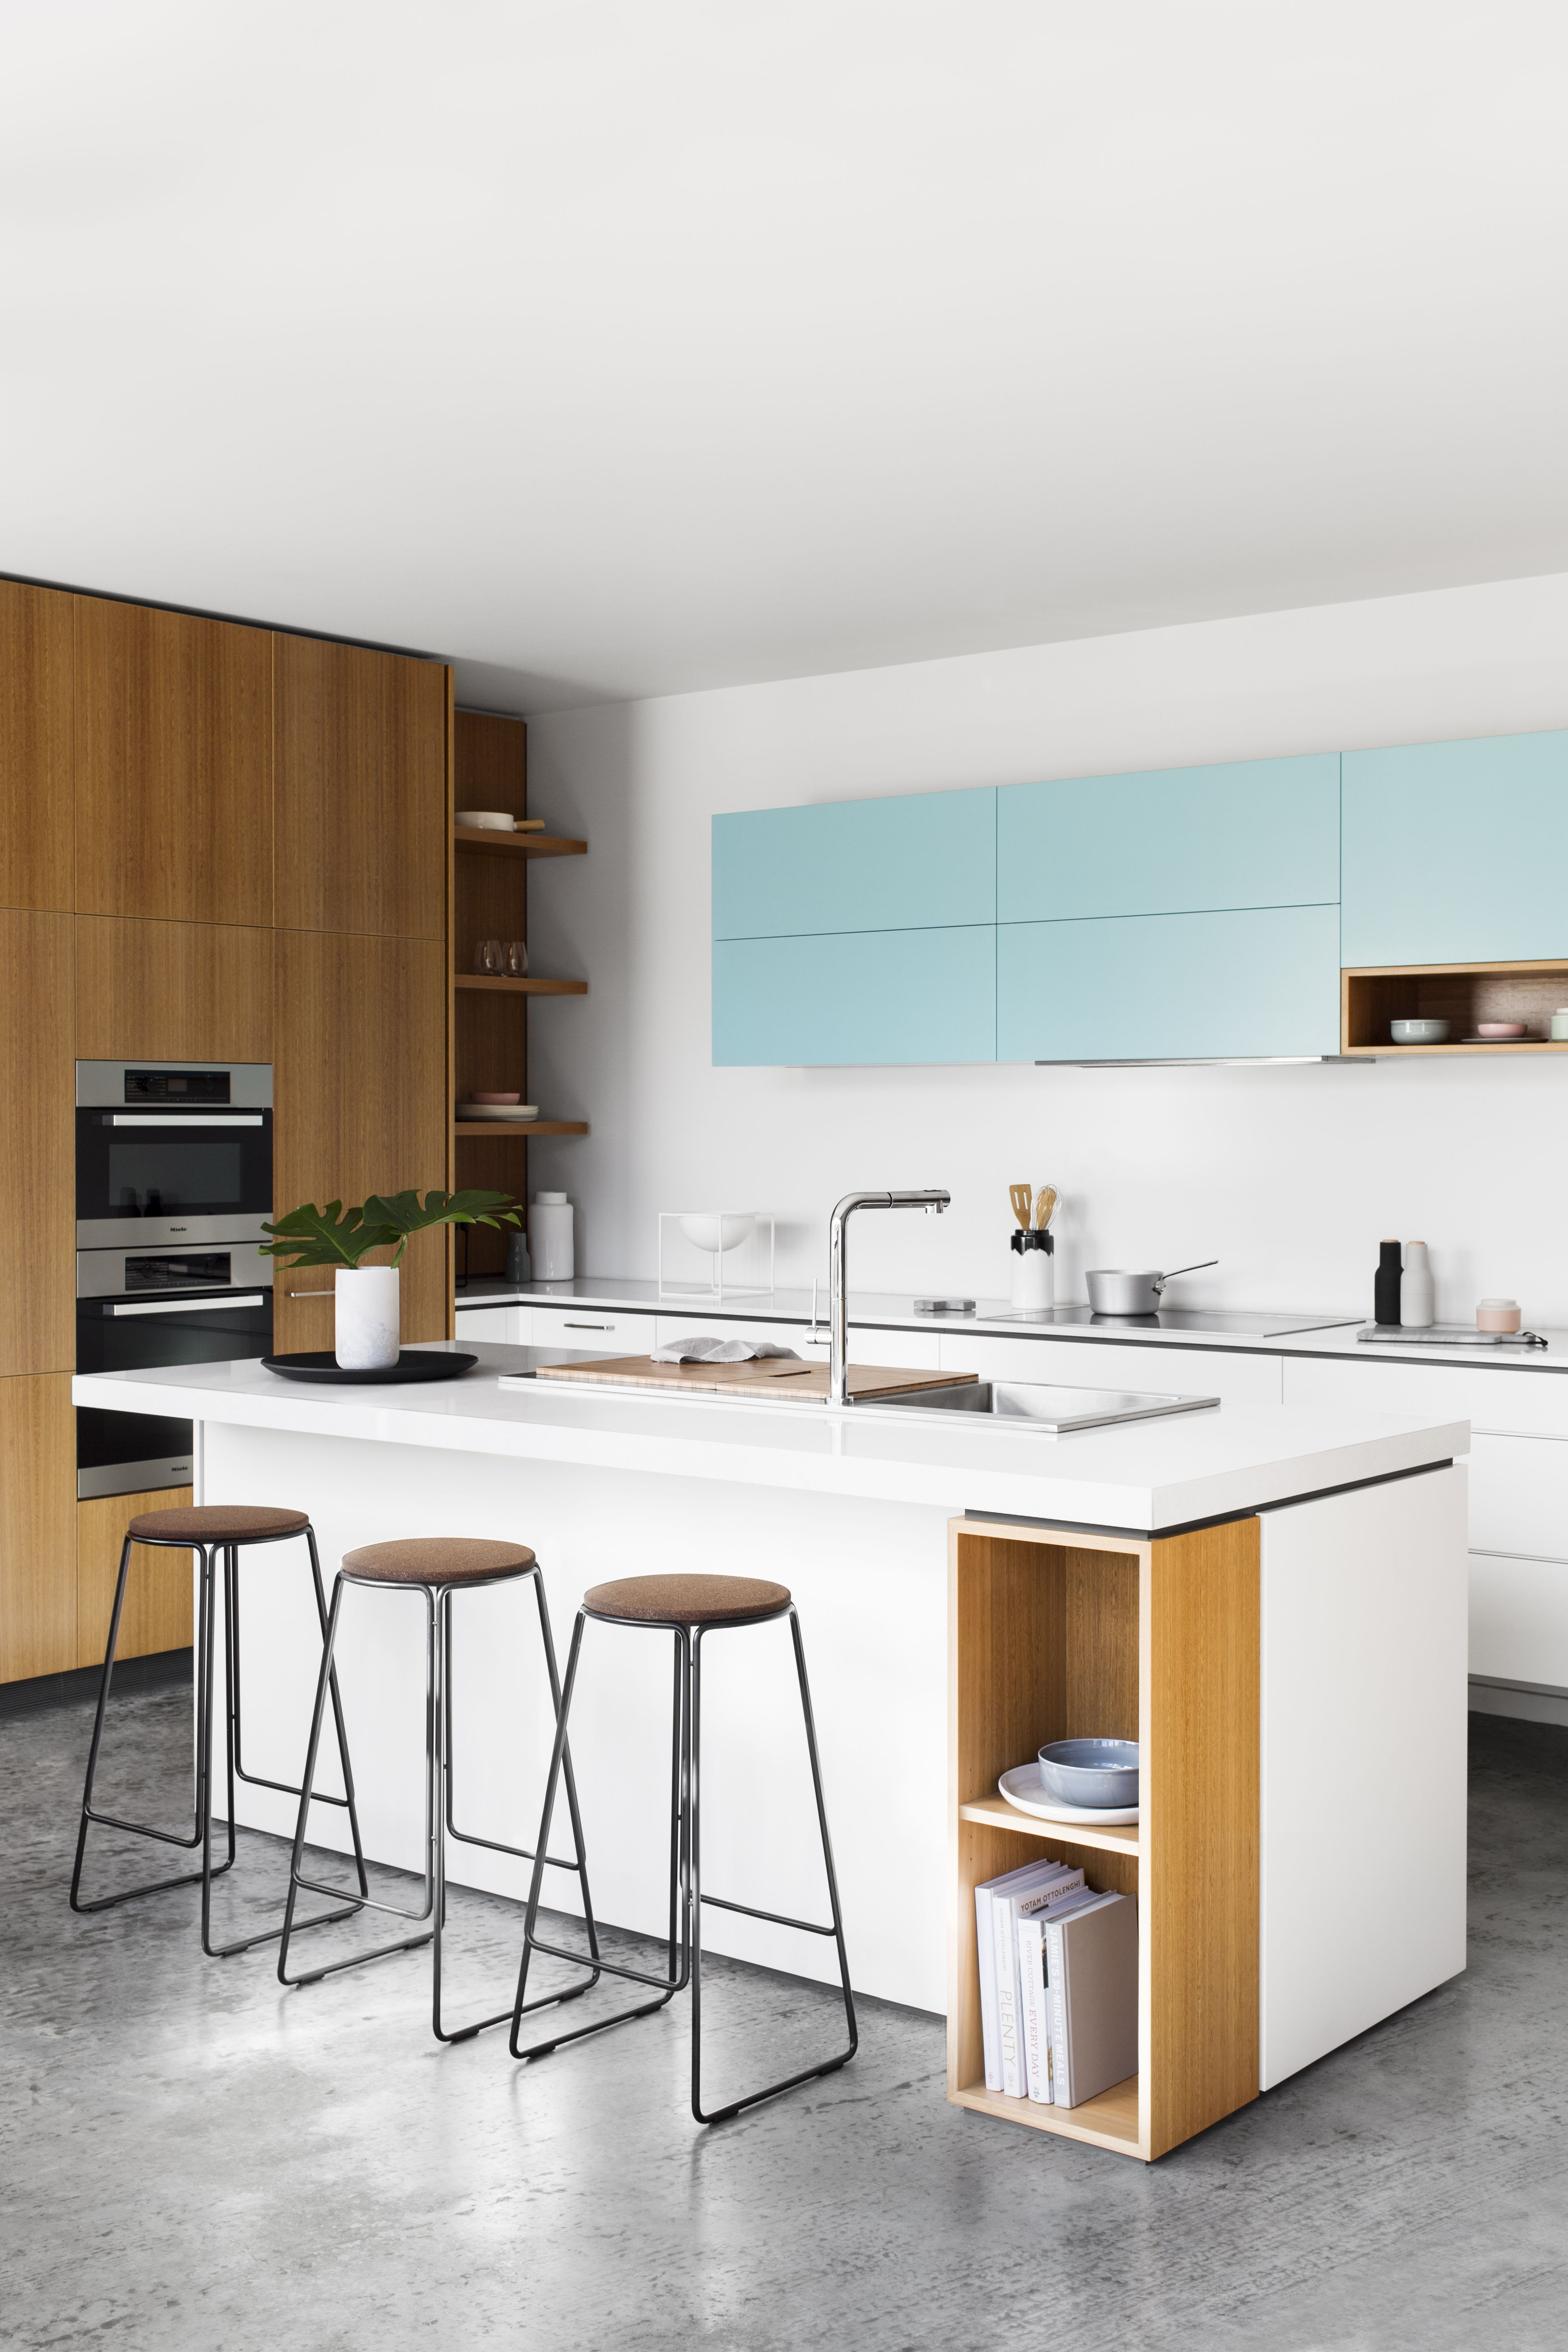 Kitchen Renovation Ideas To Inspire You In The New Year Kitchens